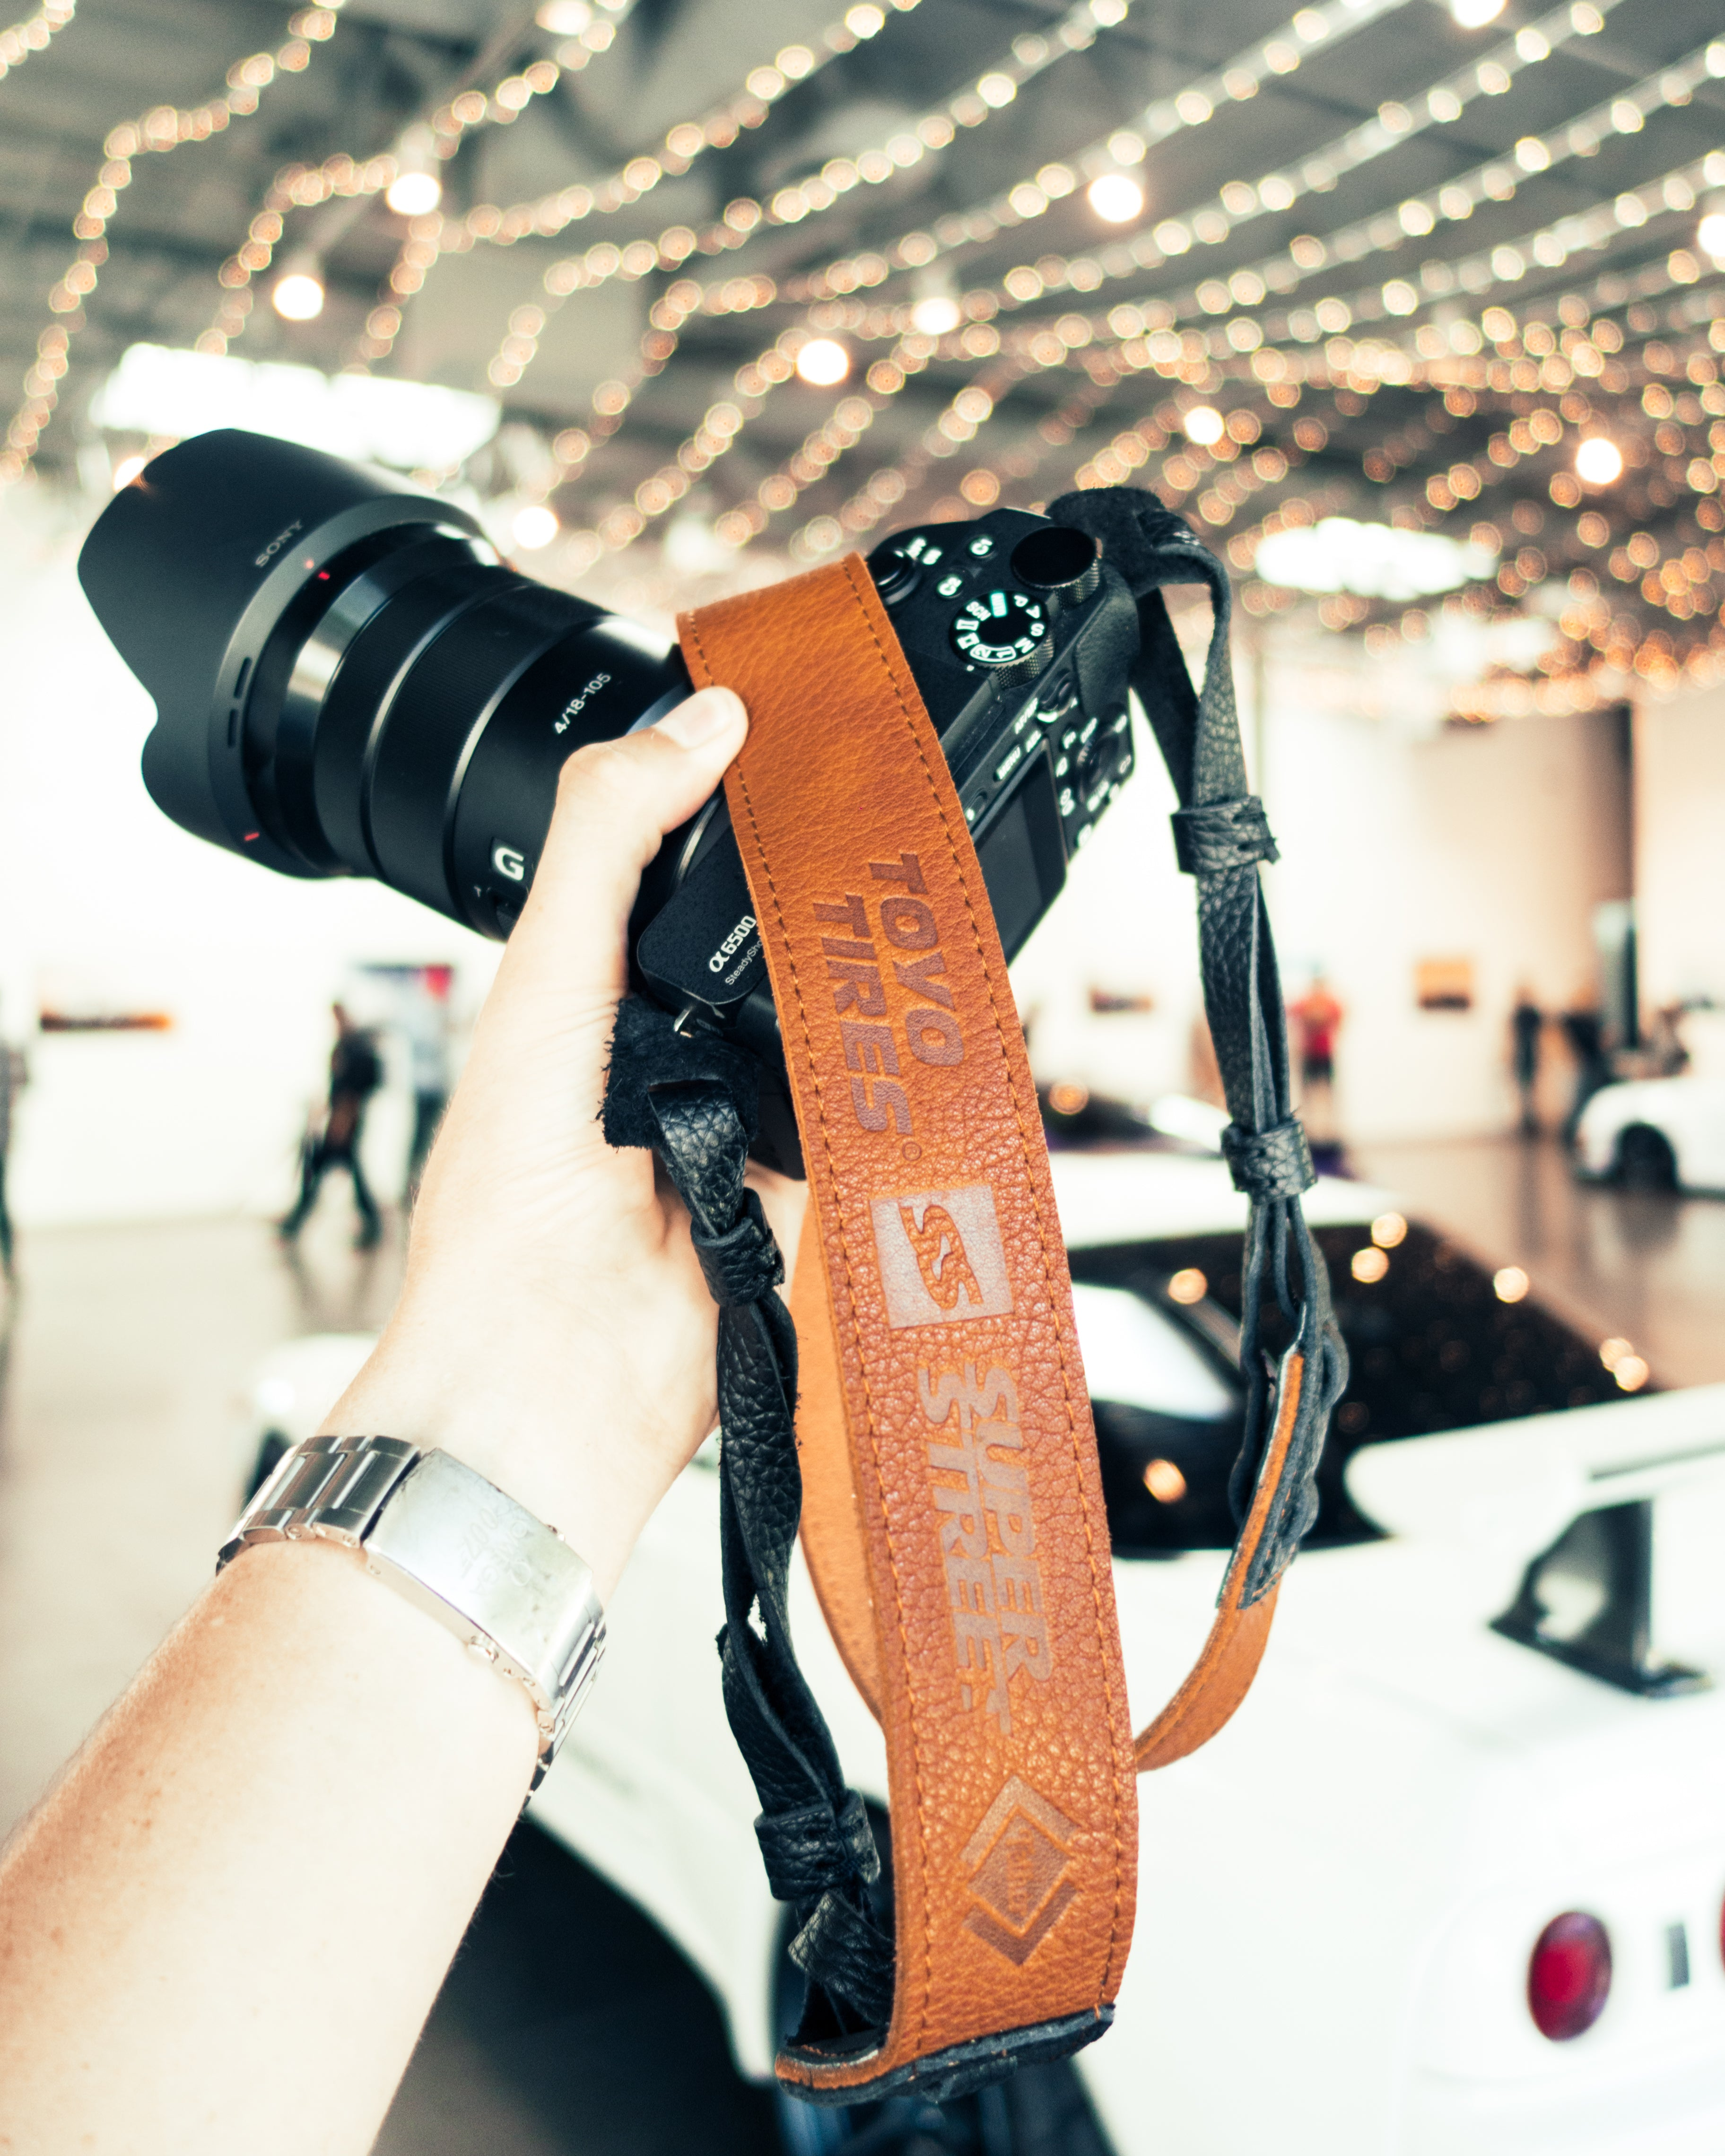 The Cross-body Superstreet / Toyo Tires Collab Camera Strap